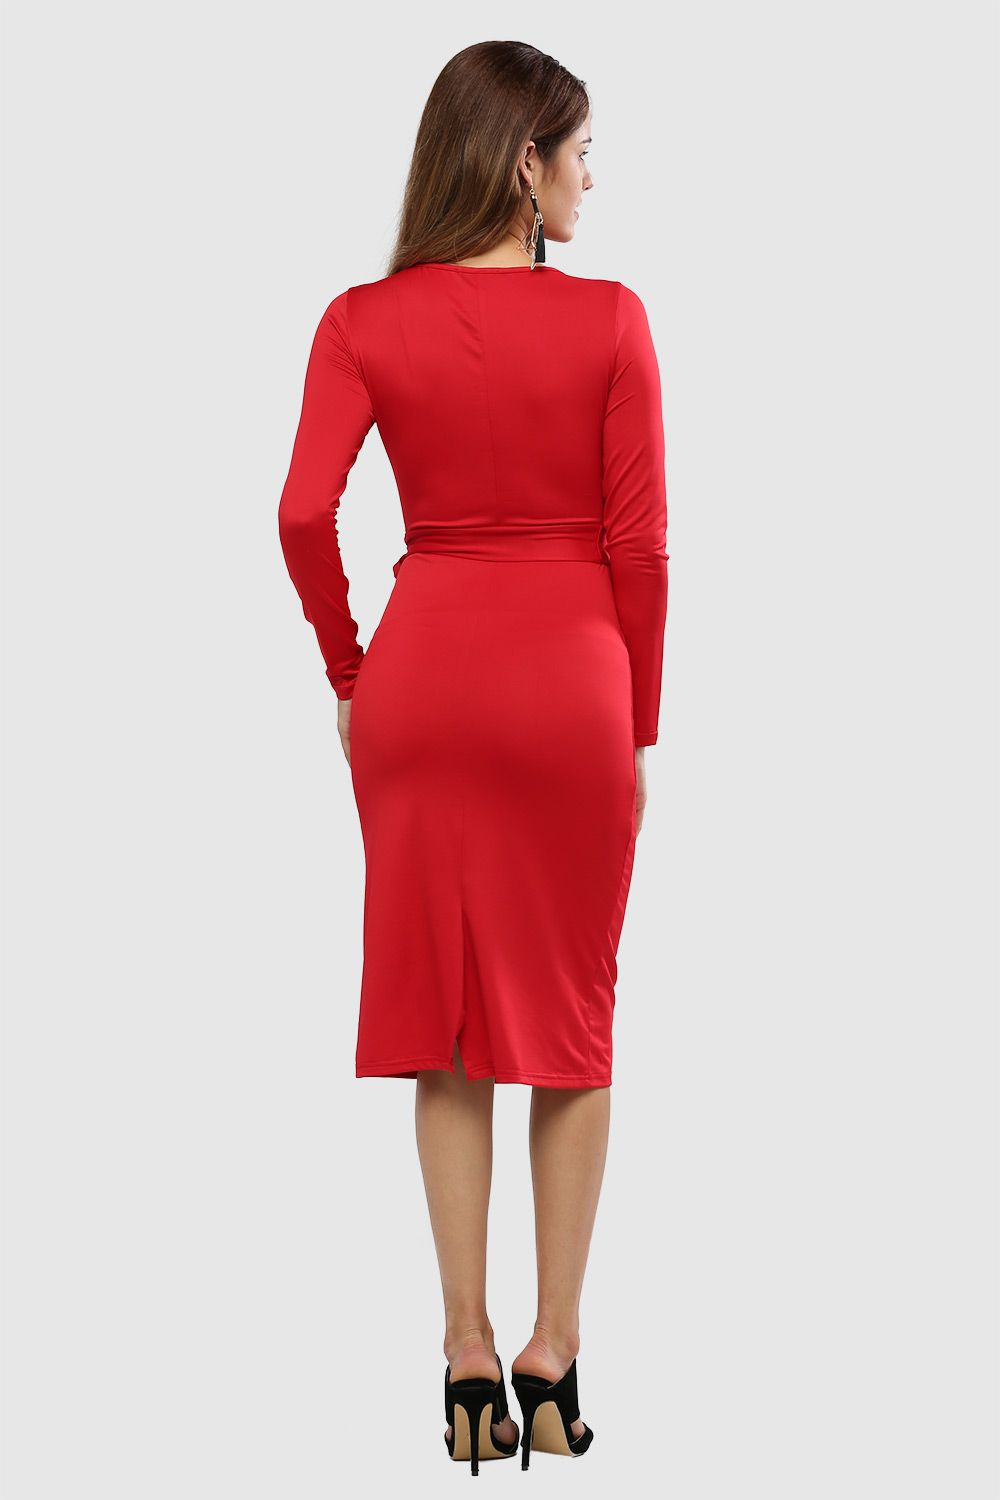 Long Sleeve Bodycon Dress With Slits